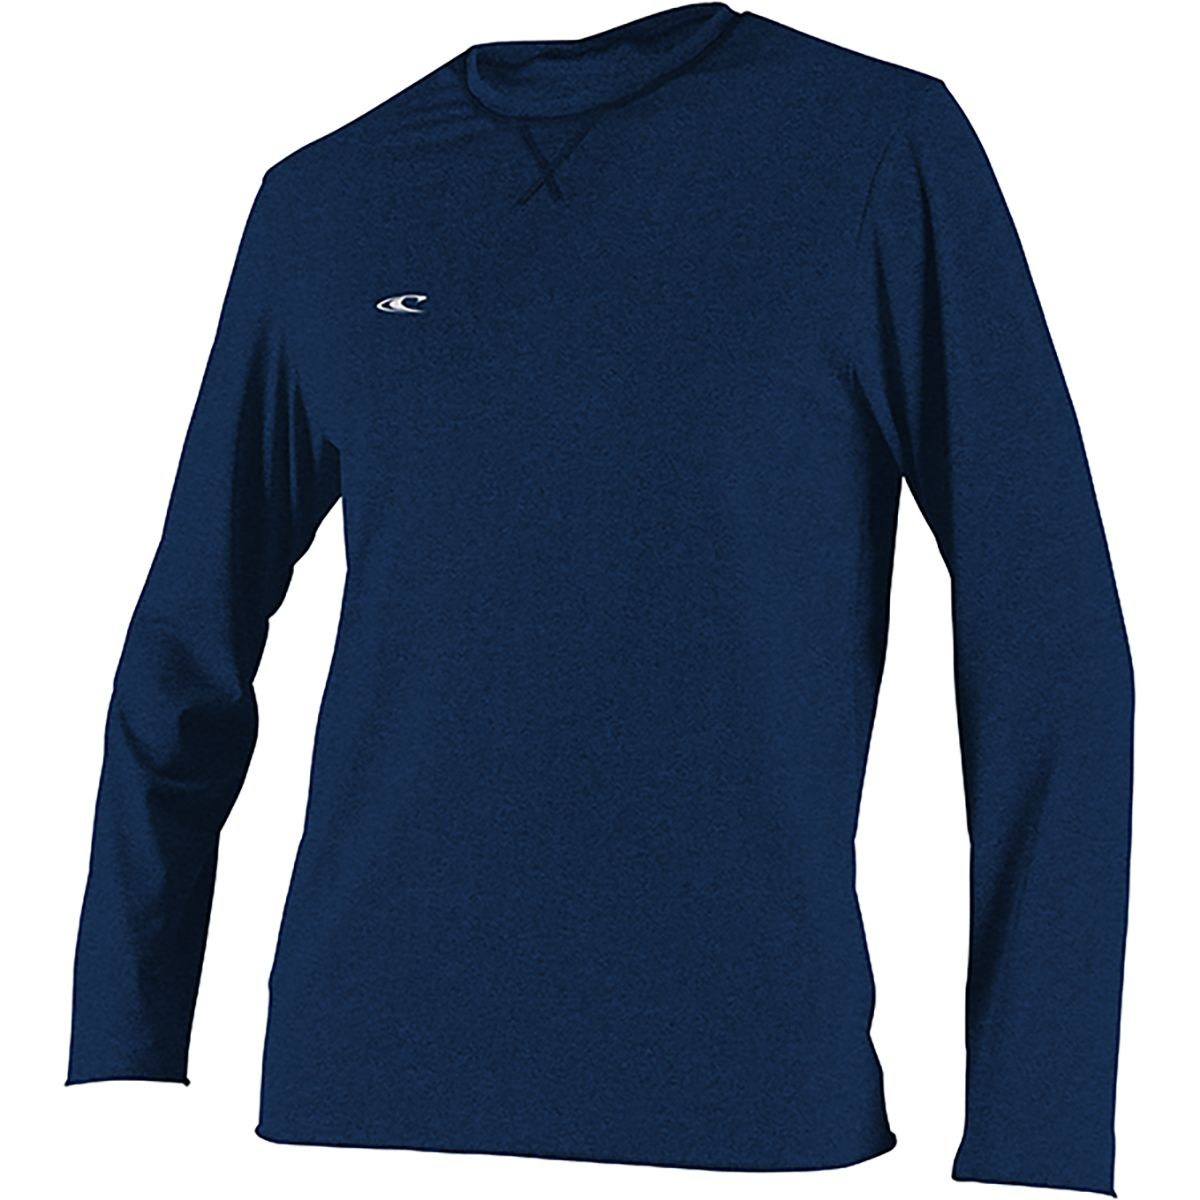 O'neill Men's Hybrid Sun Long-Sleeve Tee - Blue, M